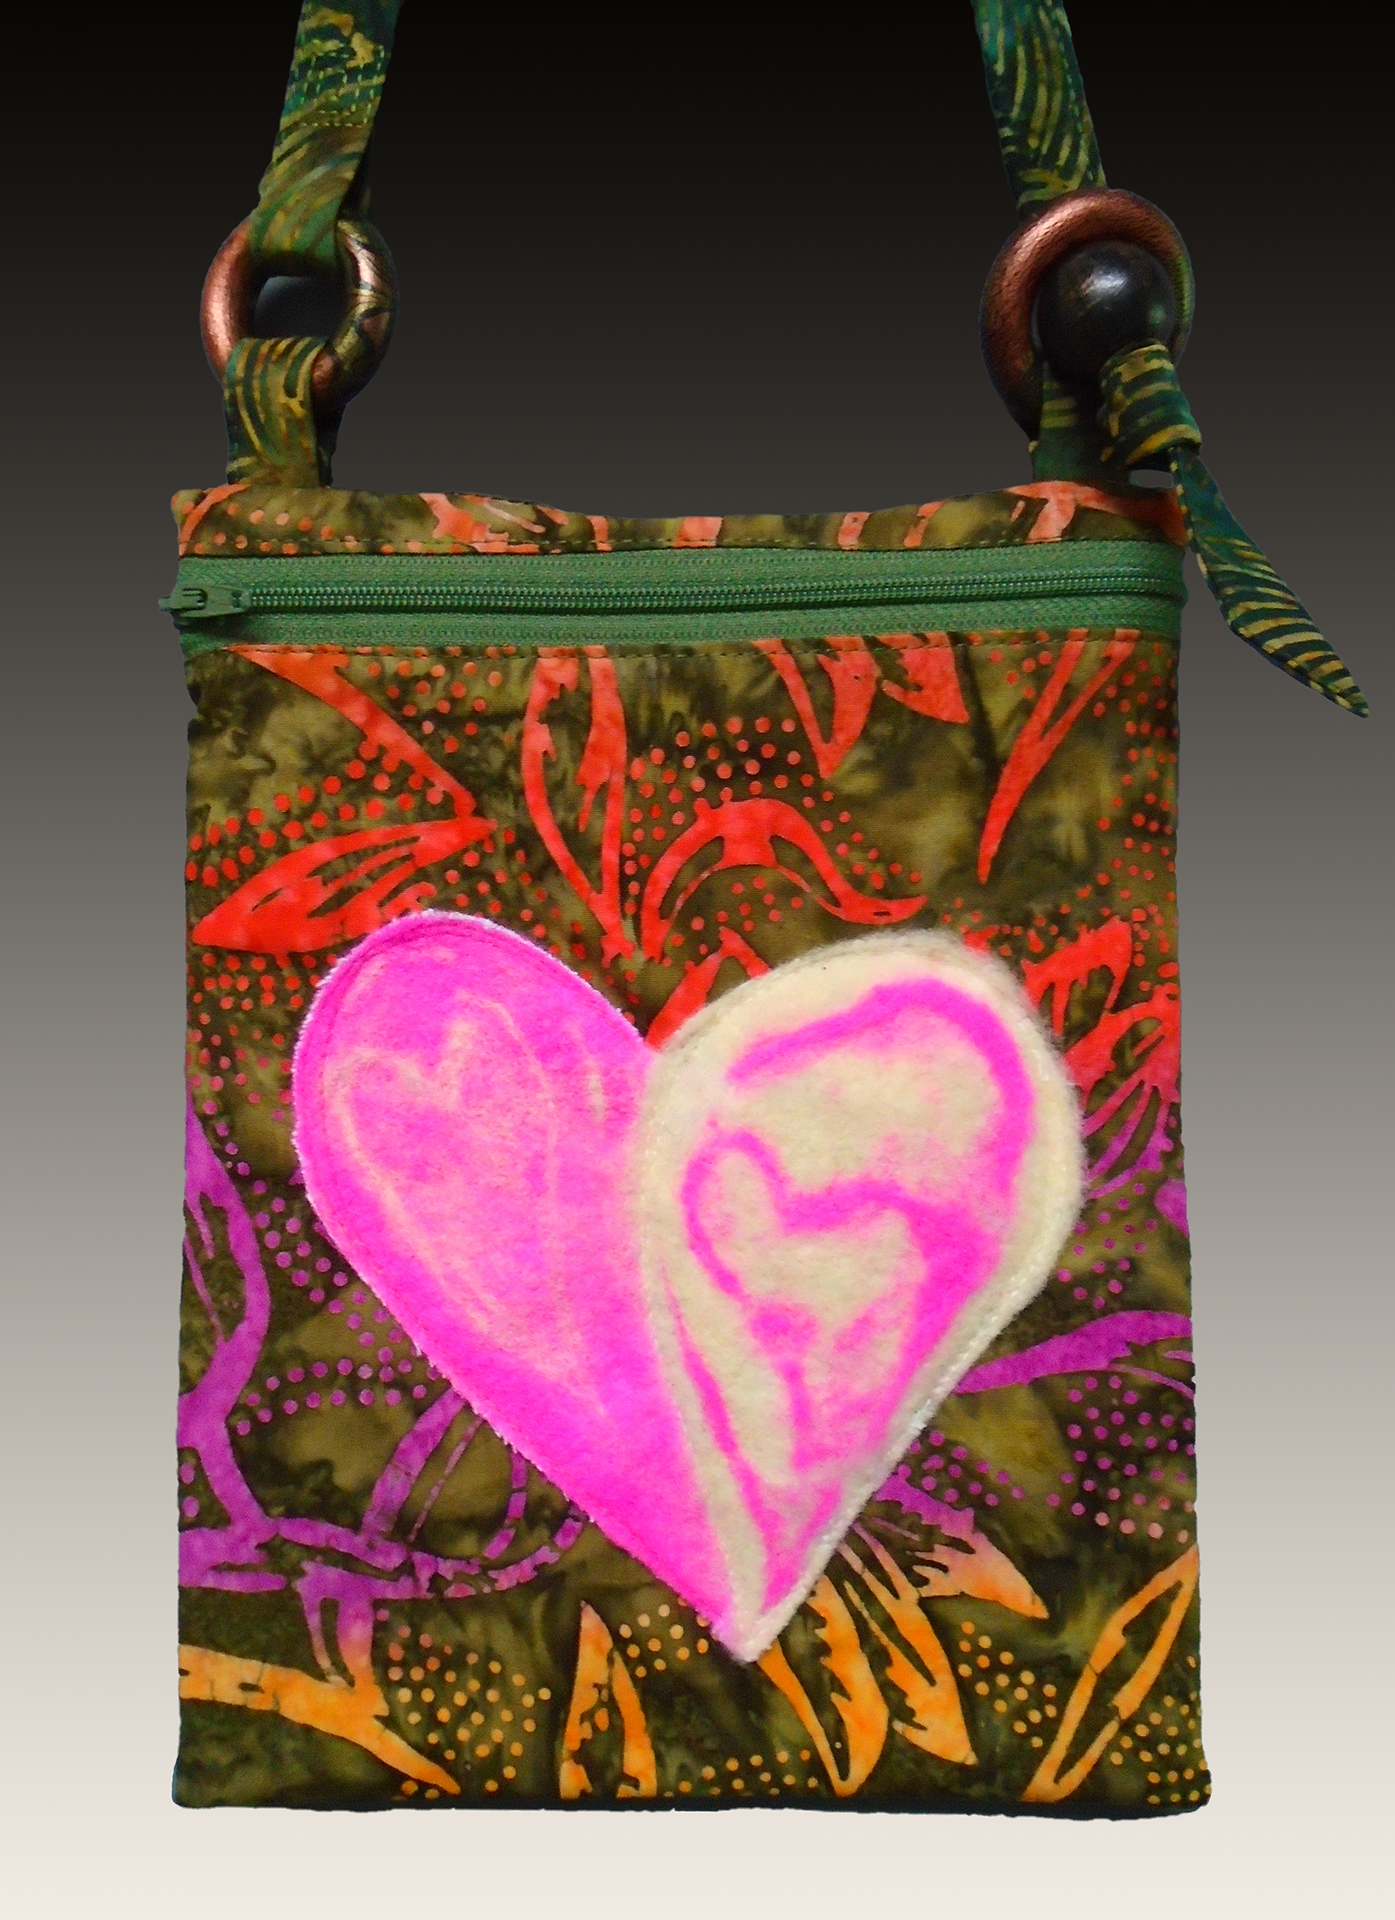 Bold hand-felted heart in pink and white on front of bag